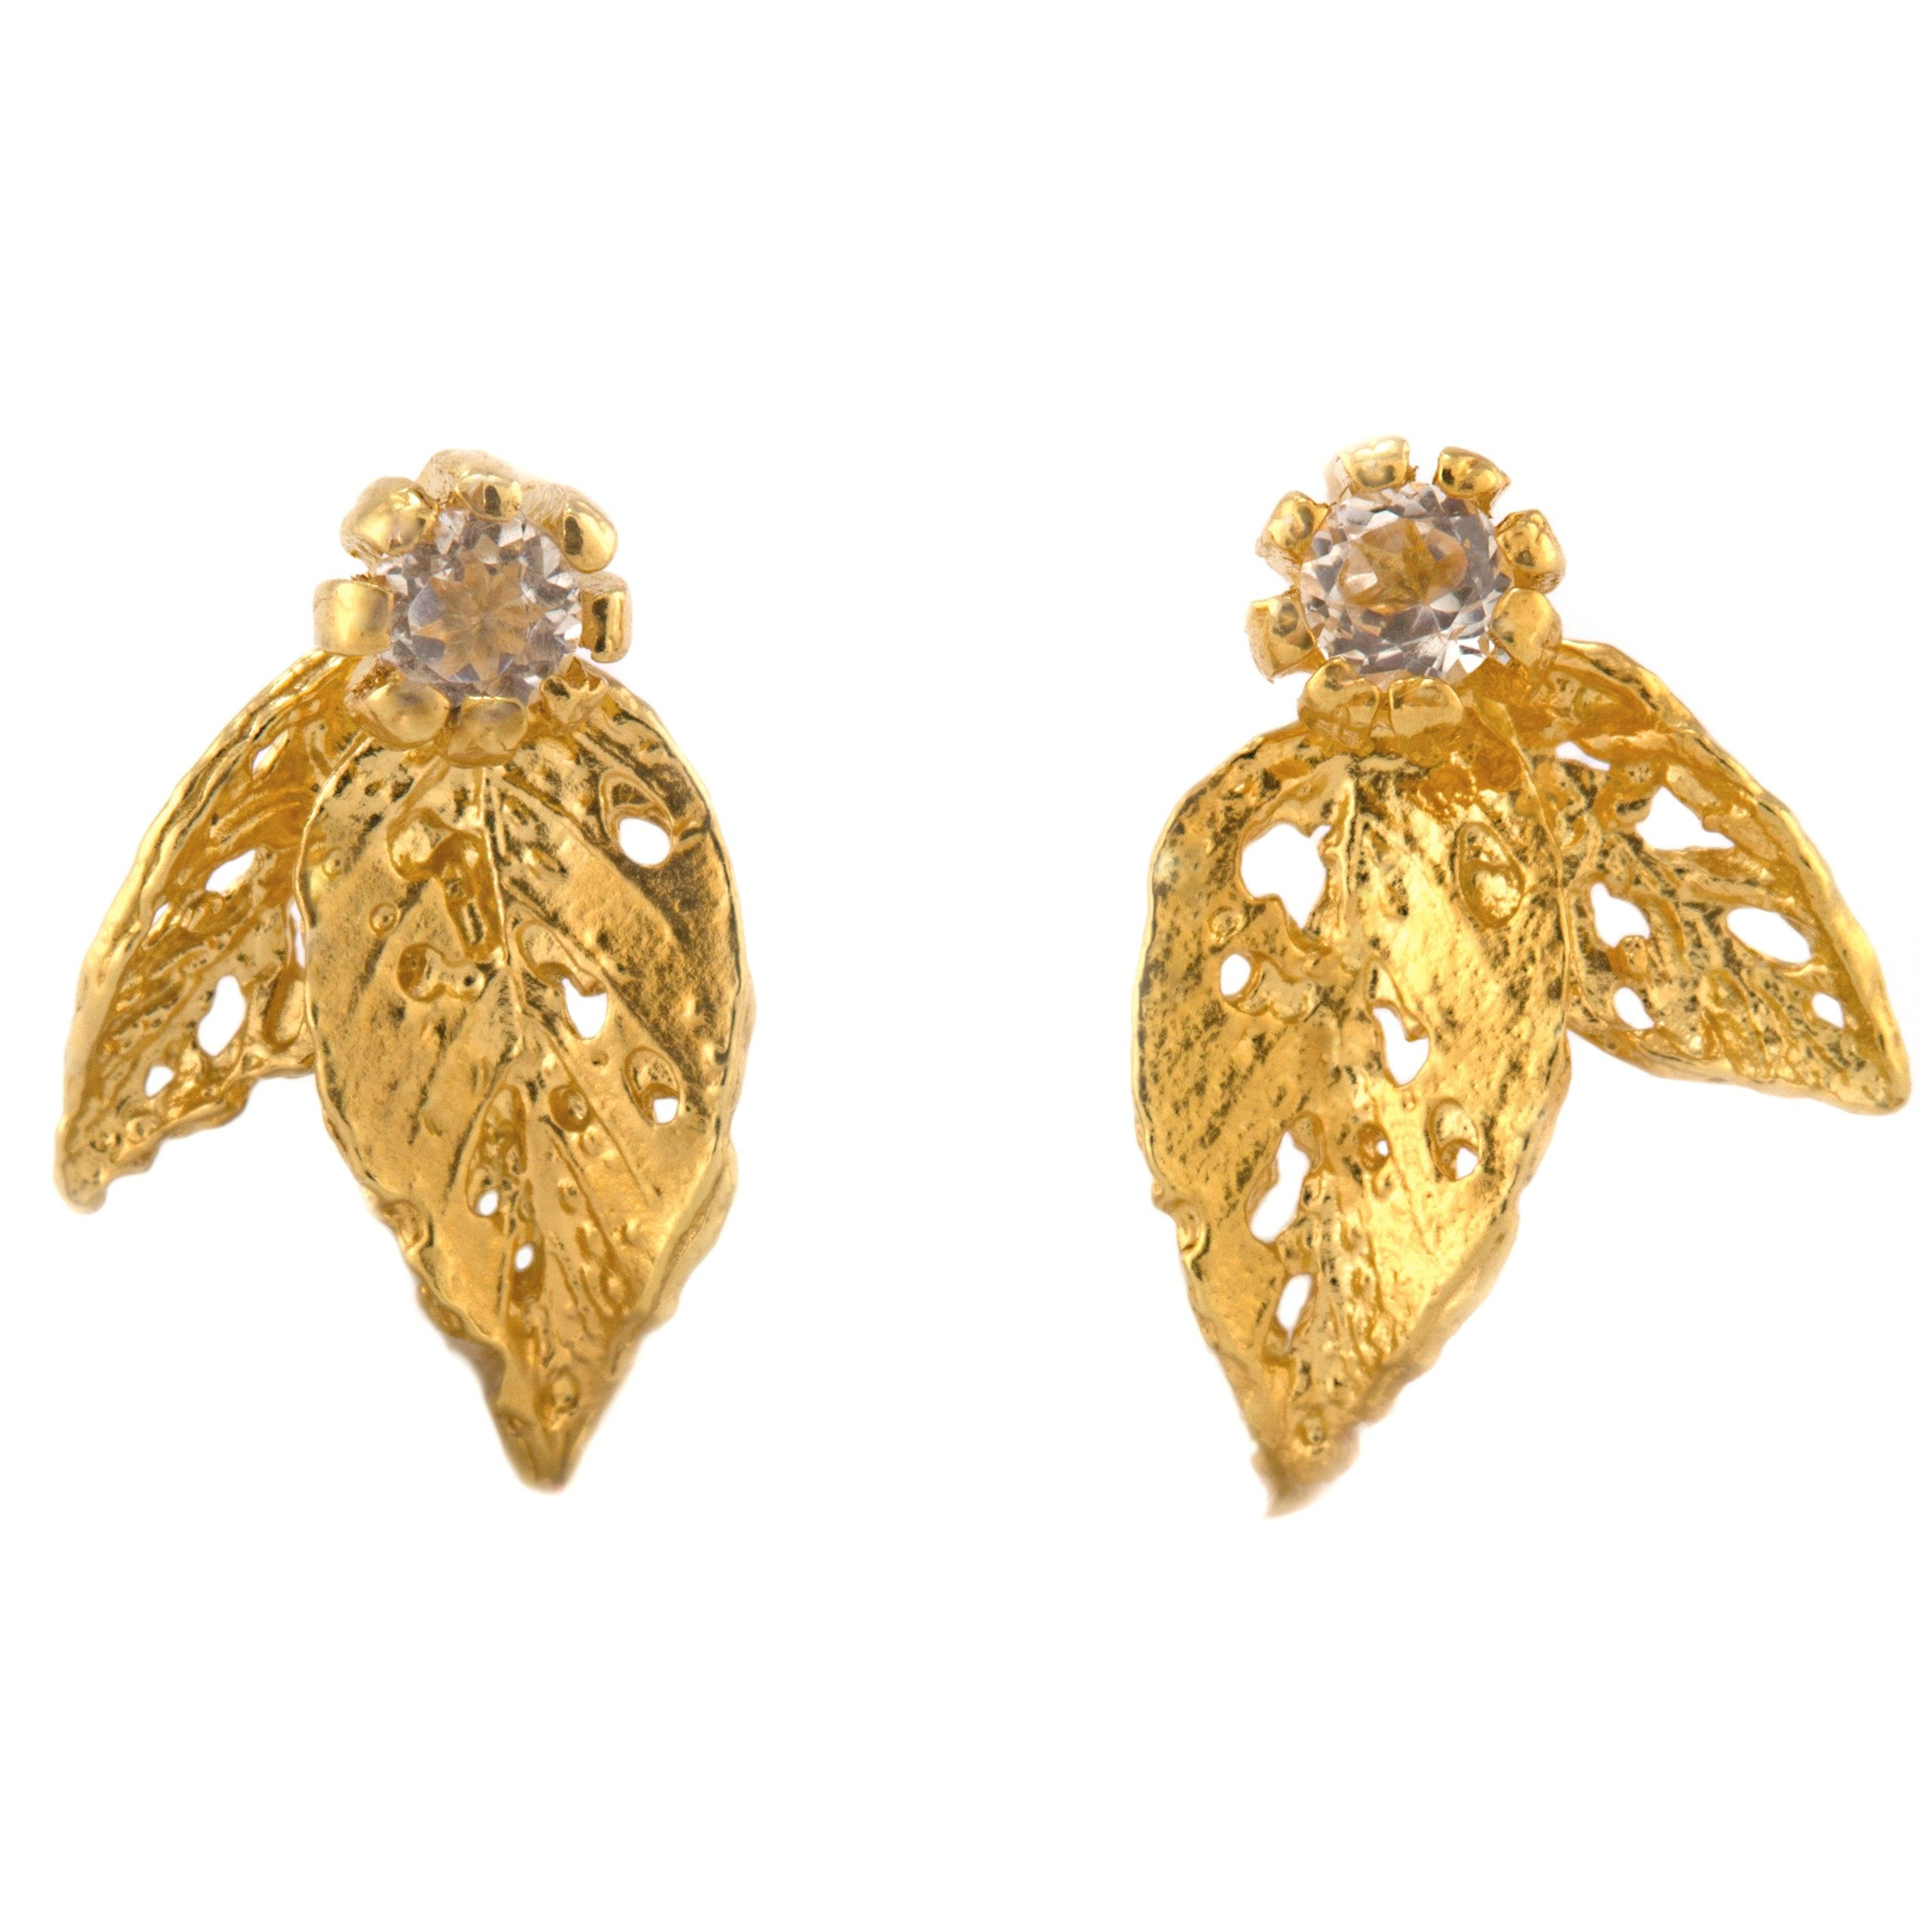 Double Leaf Topaz Stud Earrings - Gold plate | Lusting after ...